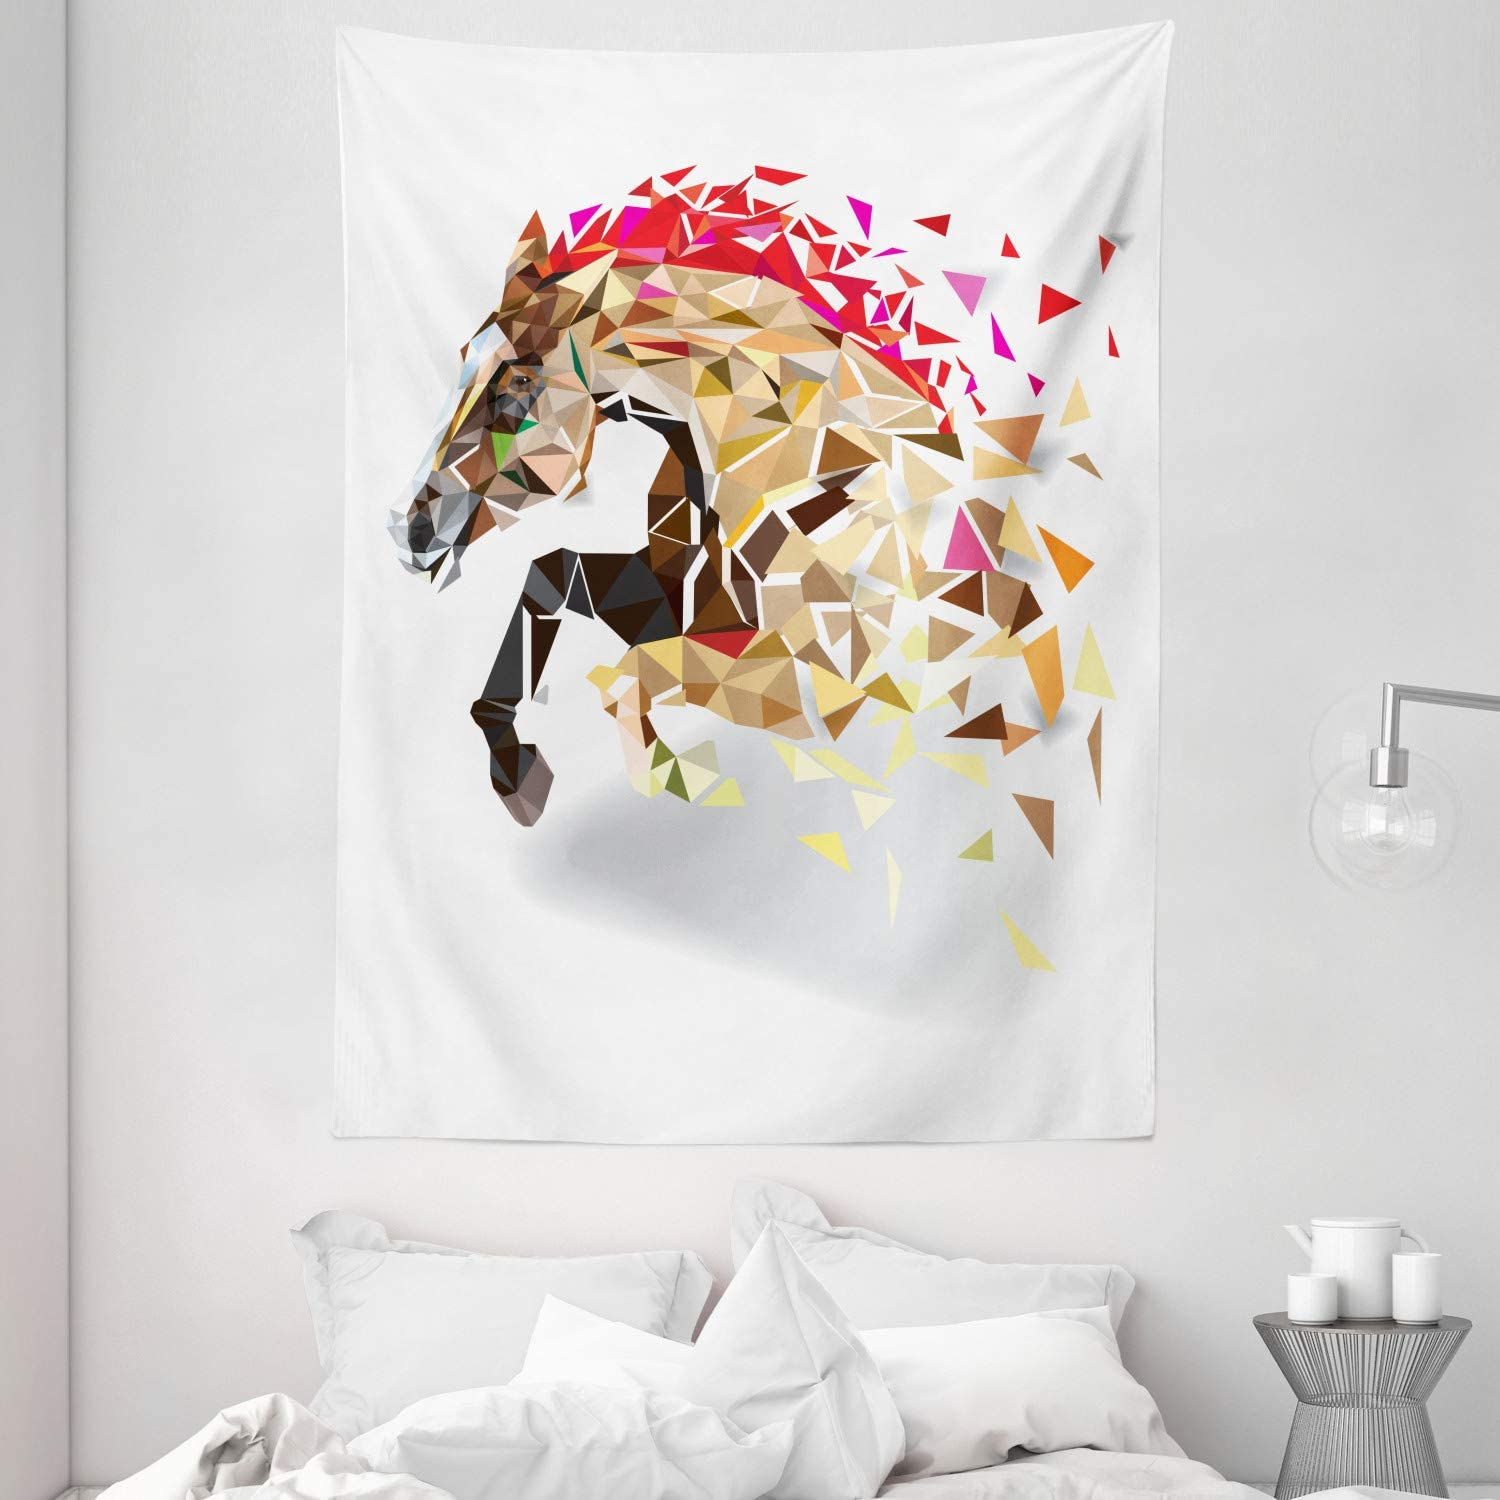 Ambesonne Diamond Tapestry, Disappearing Wild Horse in Digital Polygonal Geometric Modern Design Cubism Art, Wall Hanging for Bedroom Living Room Dorm, 60